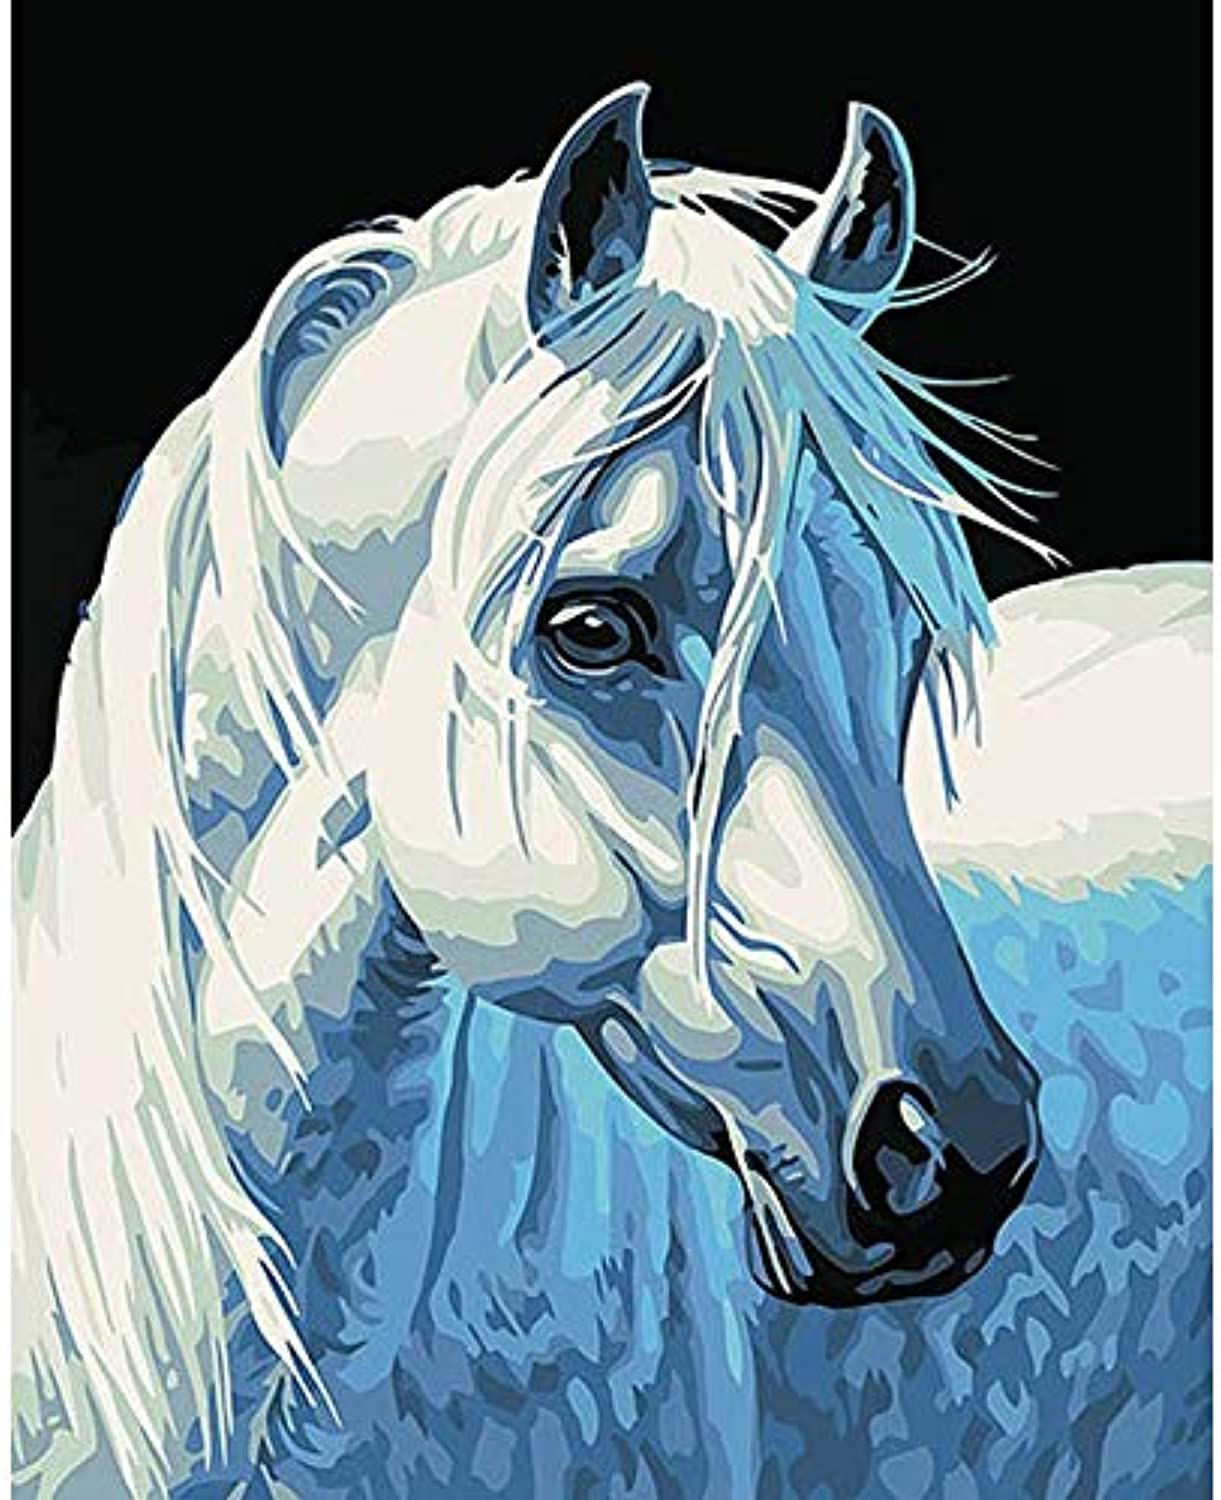 Tuwba Paint by Numbers Adult Kit White Horse Head Animal Beginner Acrylic On Canvas,Framed 40X50Cm